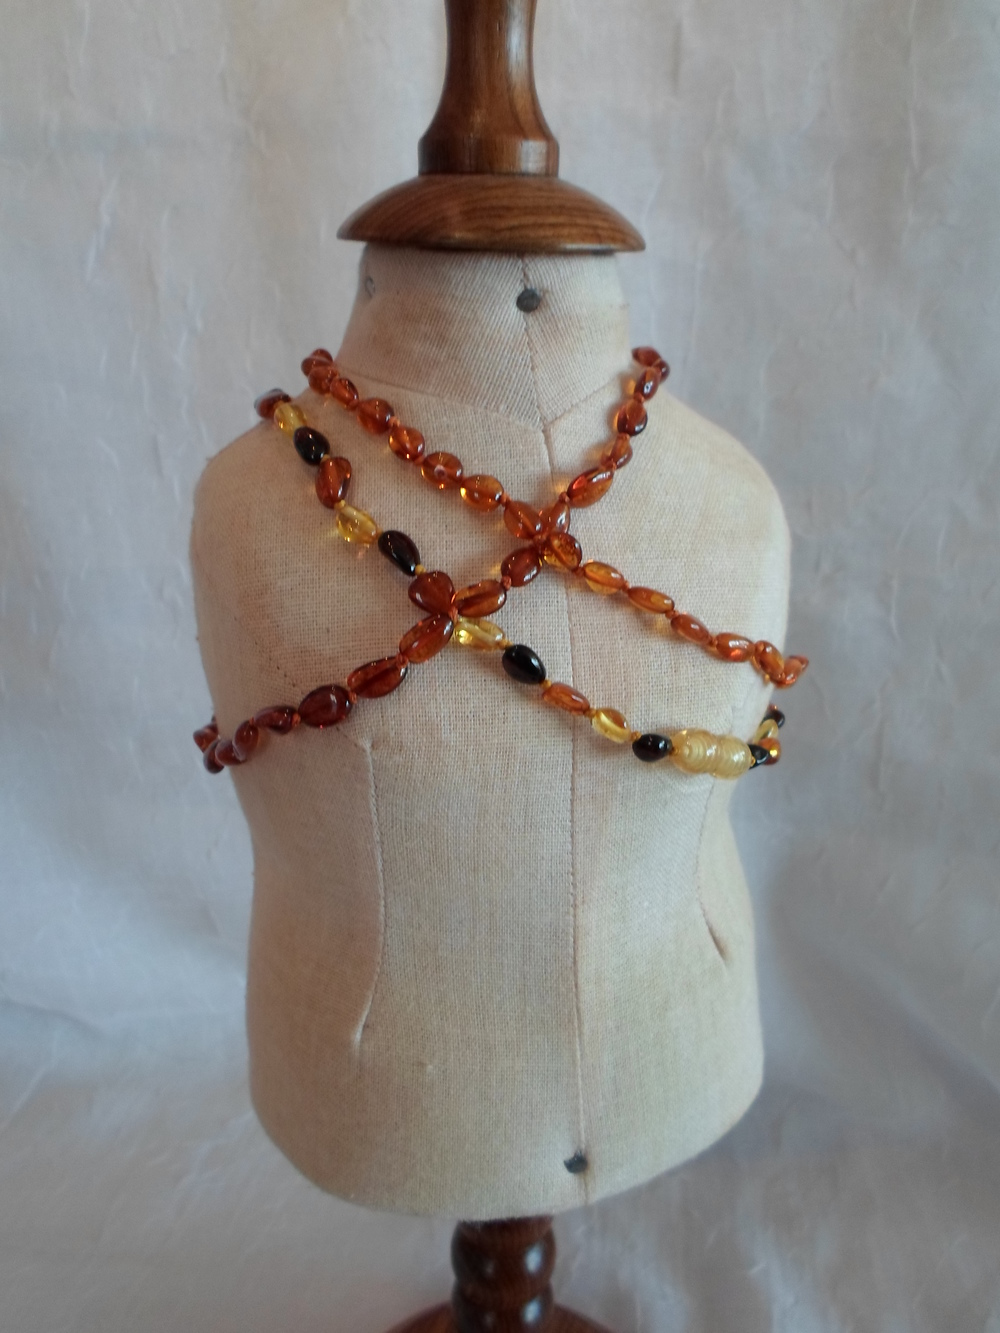 Amber teething Necklace    $23.00 ea    Wants 2